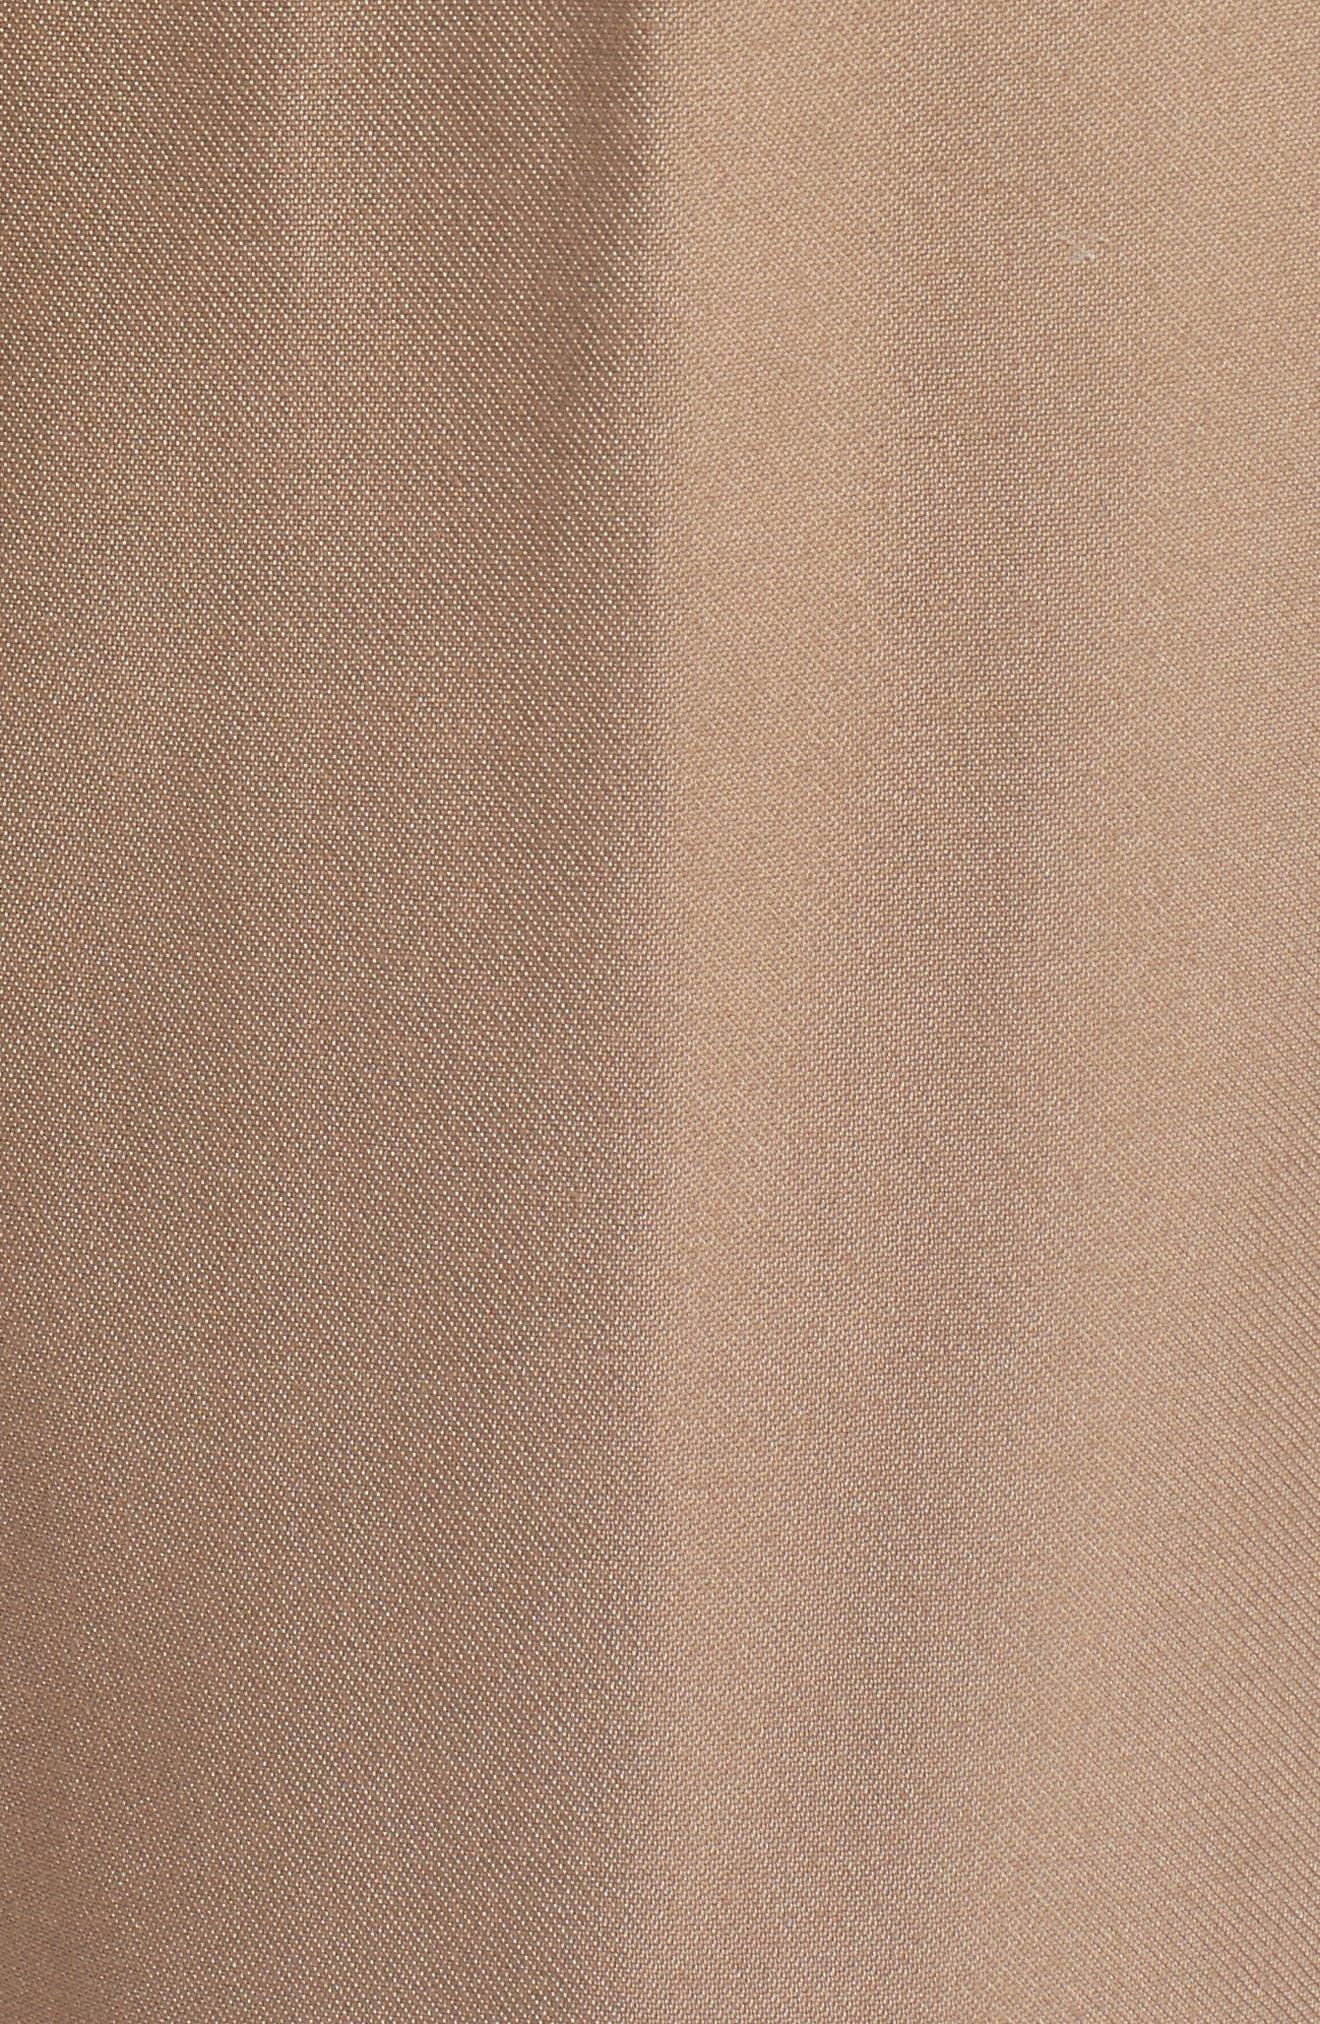 Pull-On Ankle Pants,                             Alternate thumbnail 5, color,                             Tan Greige